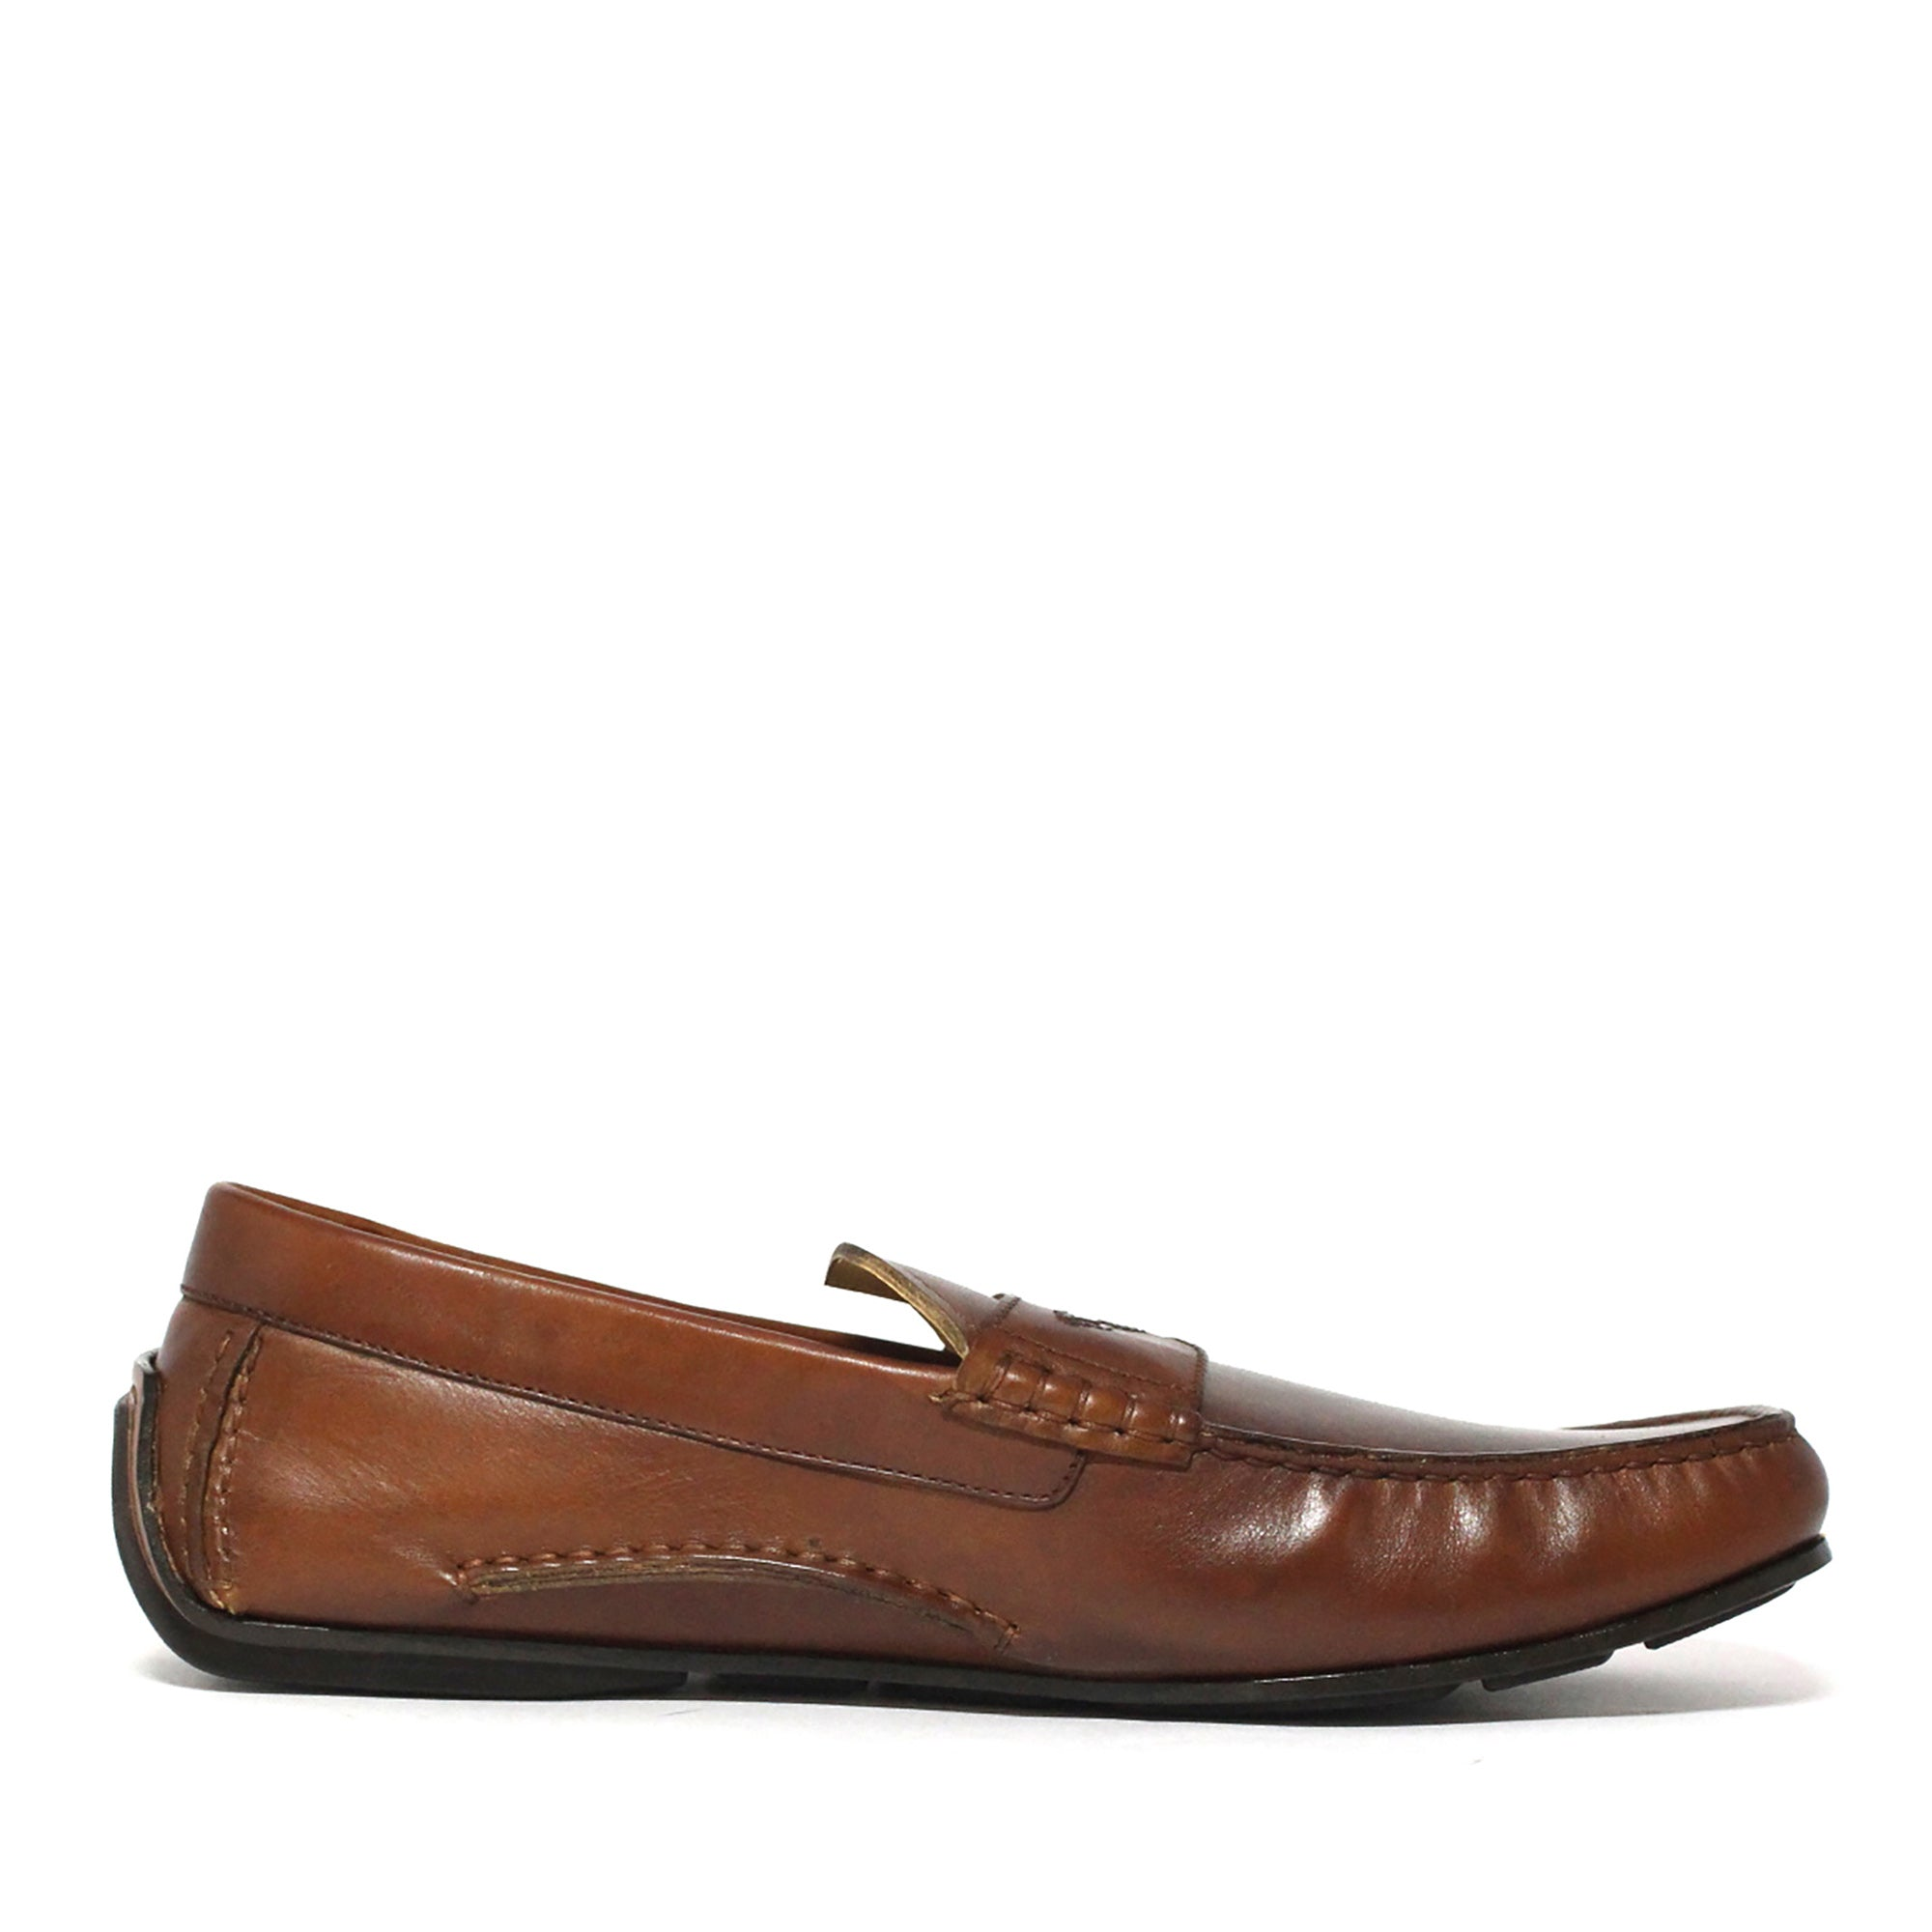 Bally Wisly Men's Driver Shoe